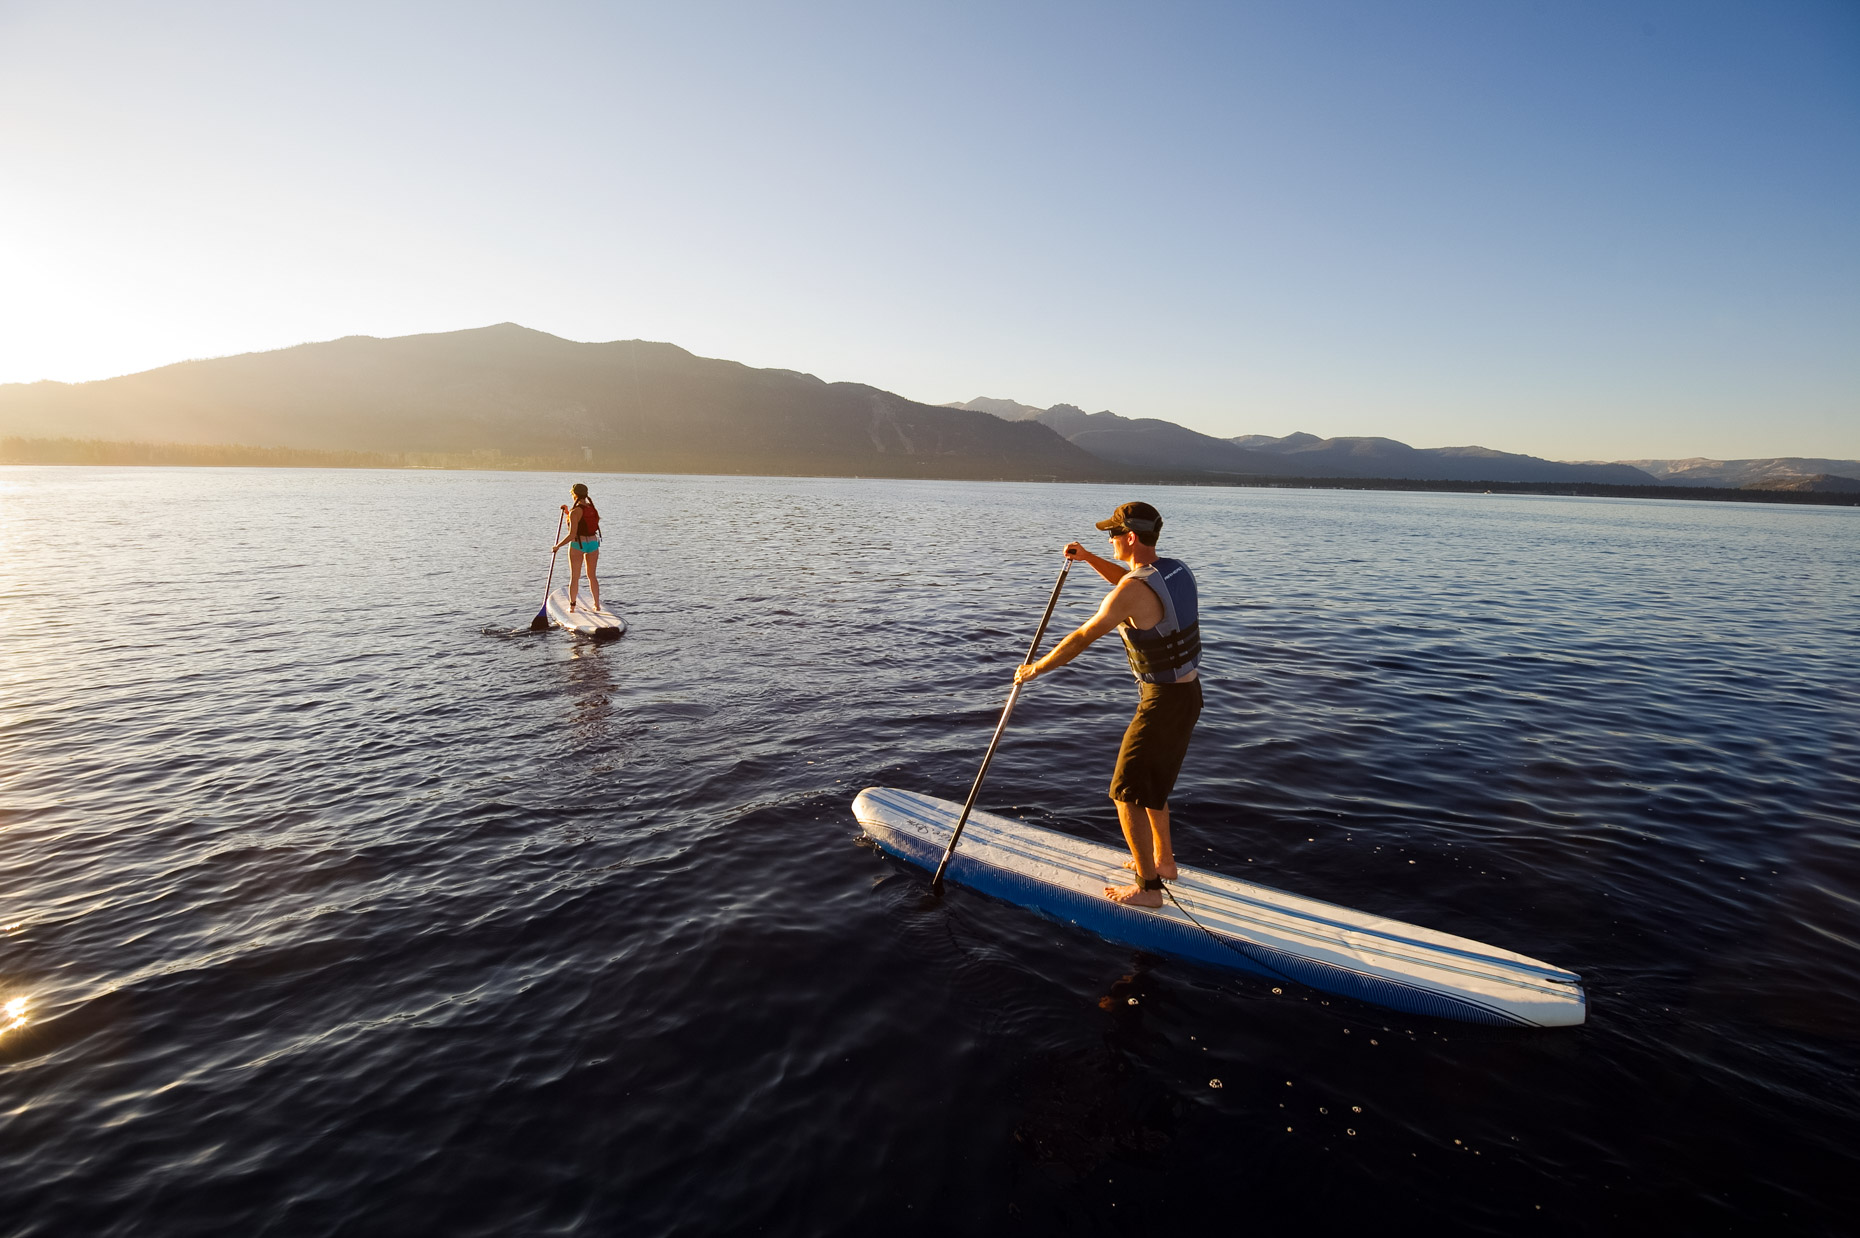 Stand Up Paddleboarding (SUP) At Sunrise - Lake Tahoe, Nevada